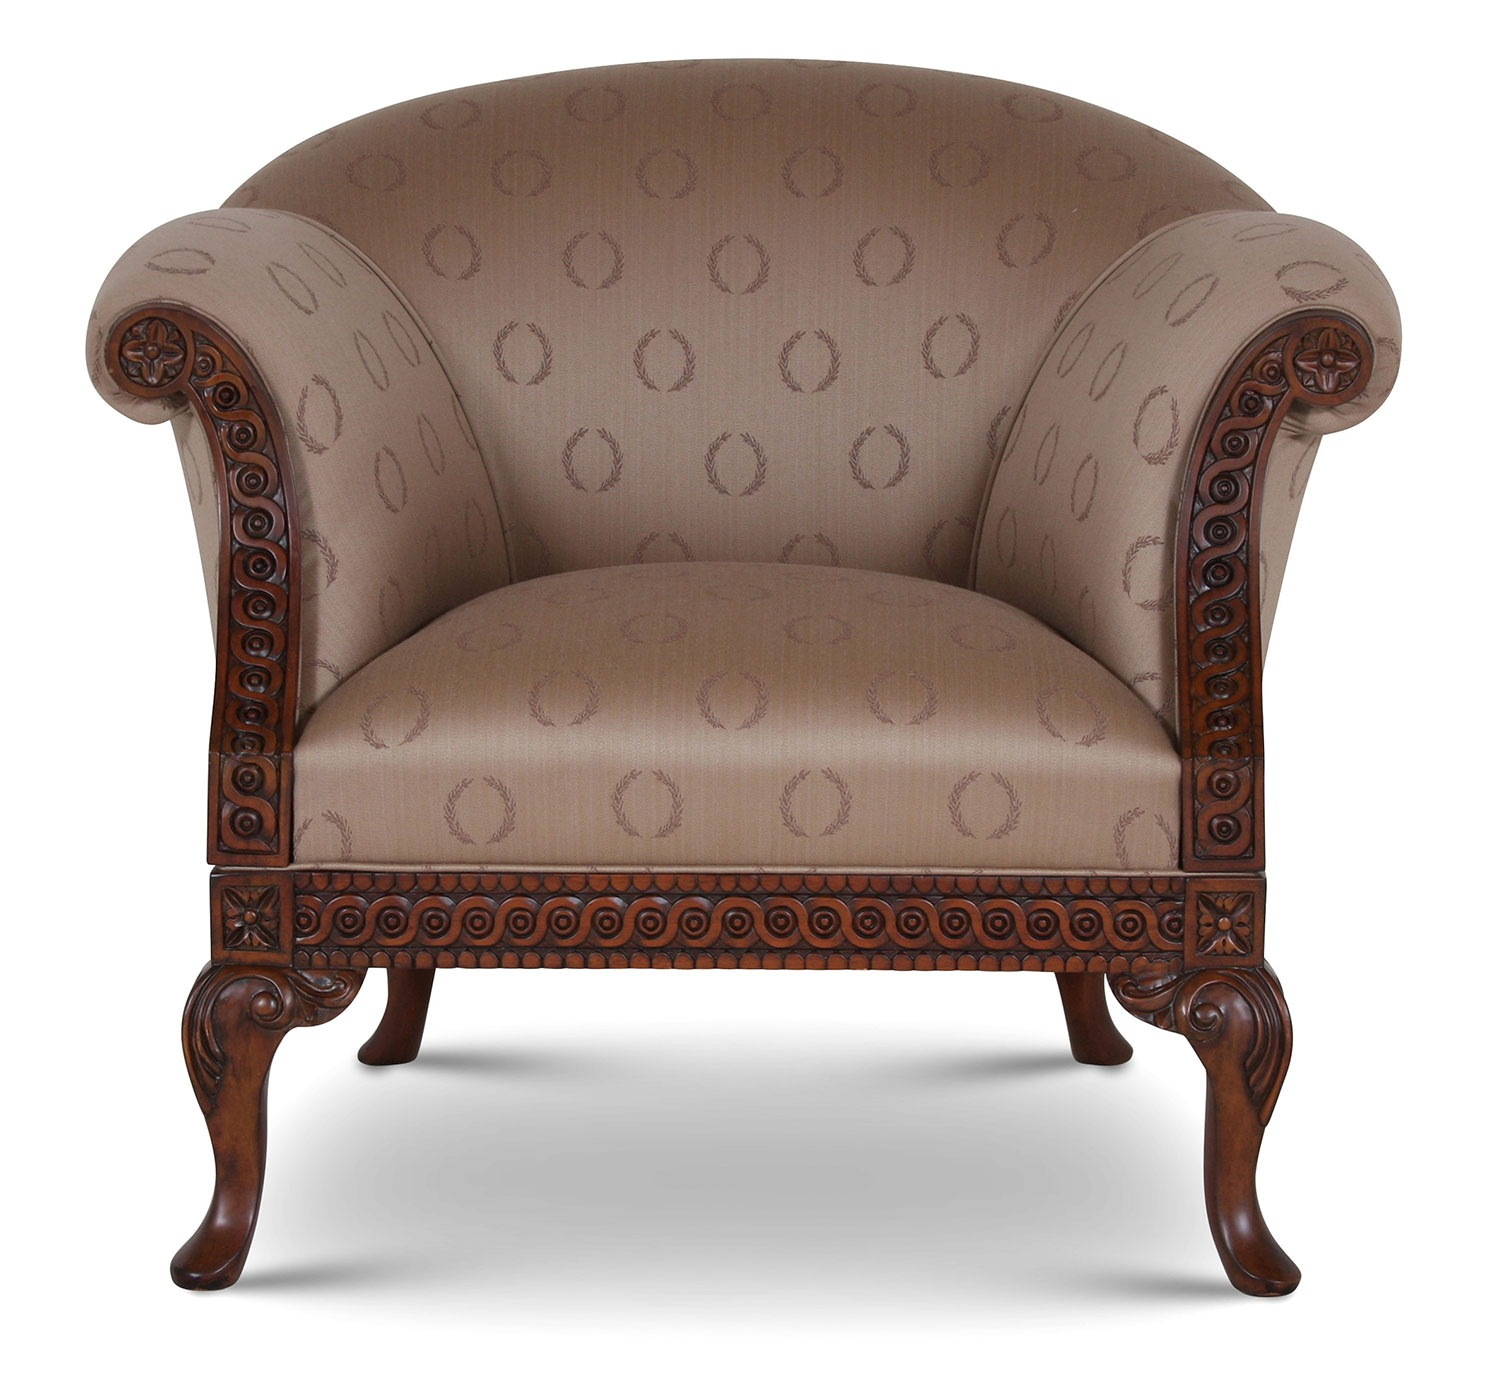 Pride Regency style chair in Viyella Laurel